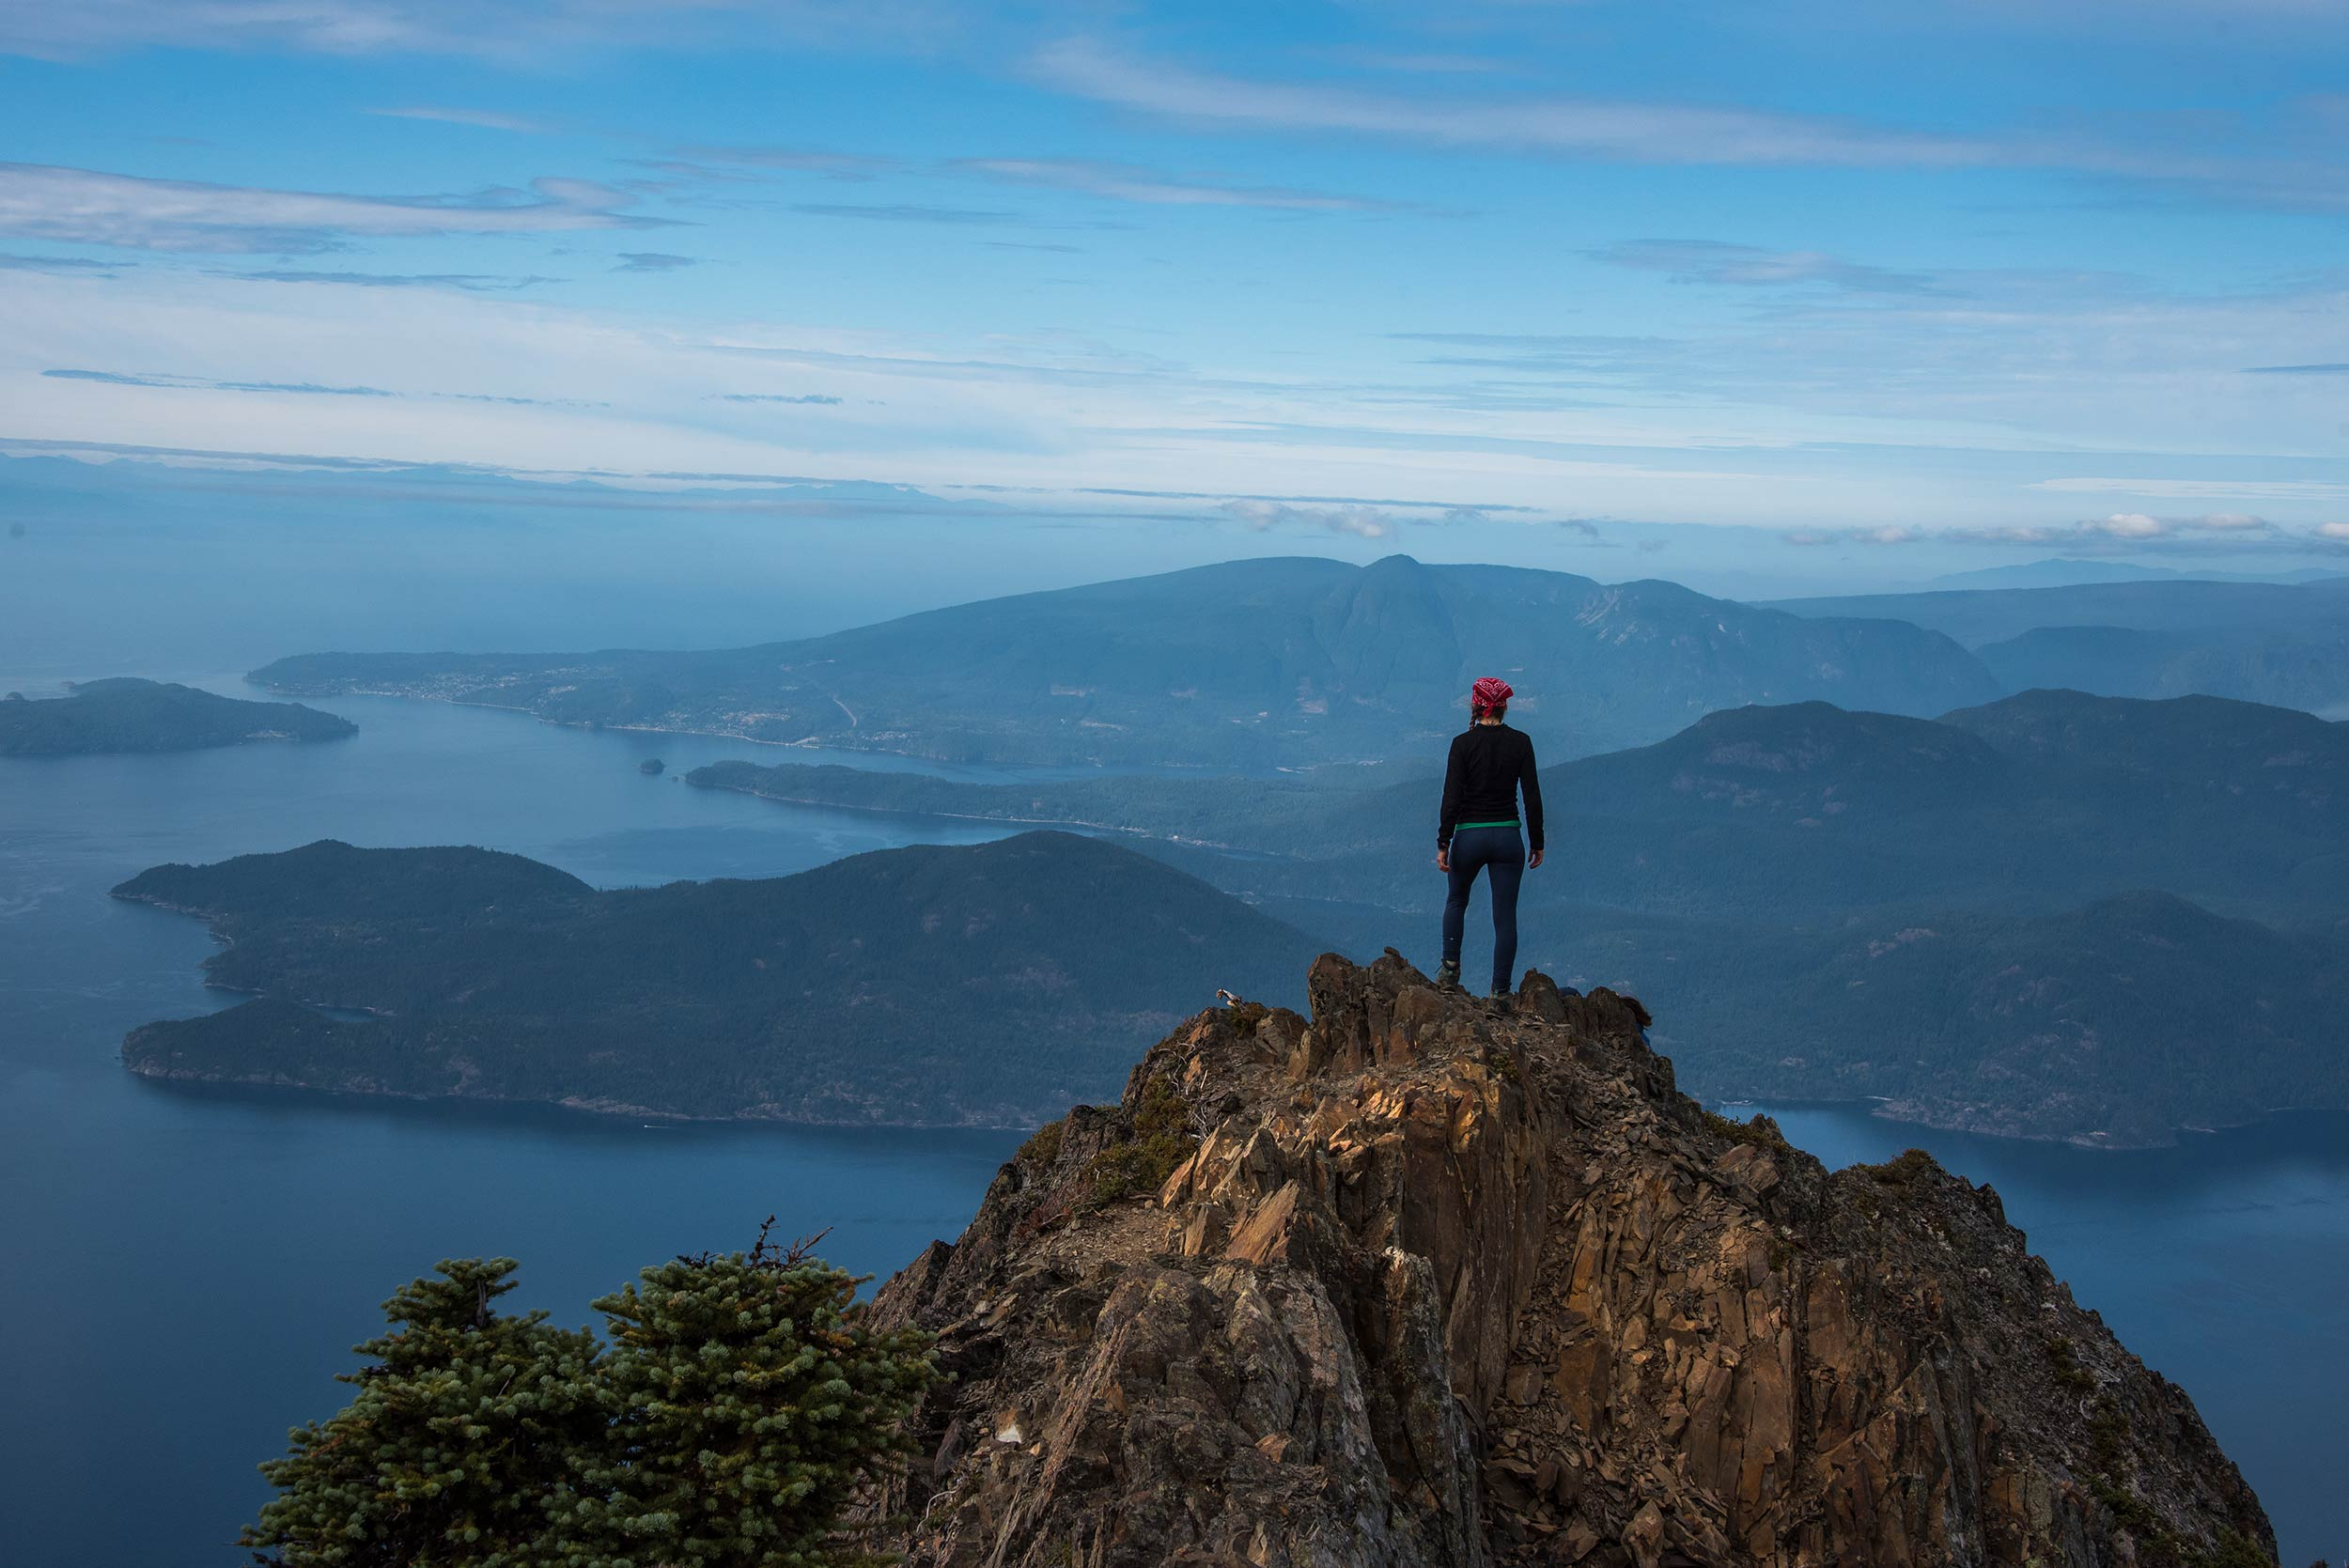 howe_sound_crest_trail_candice_brunswick_peak3.jpg